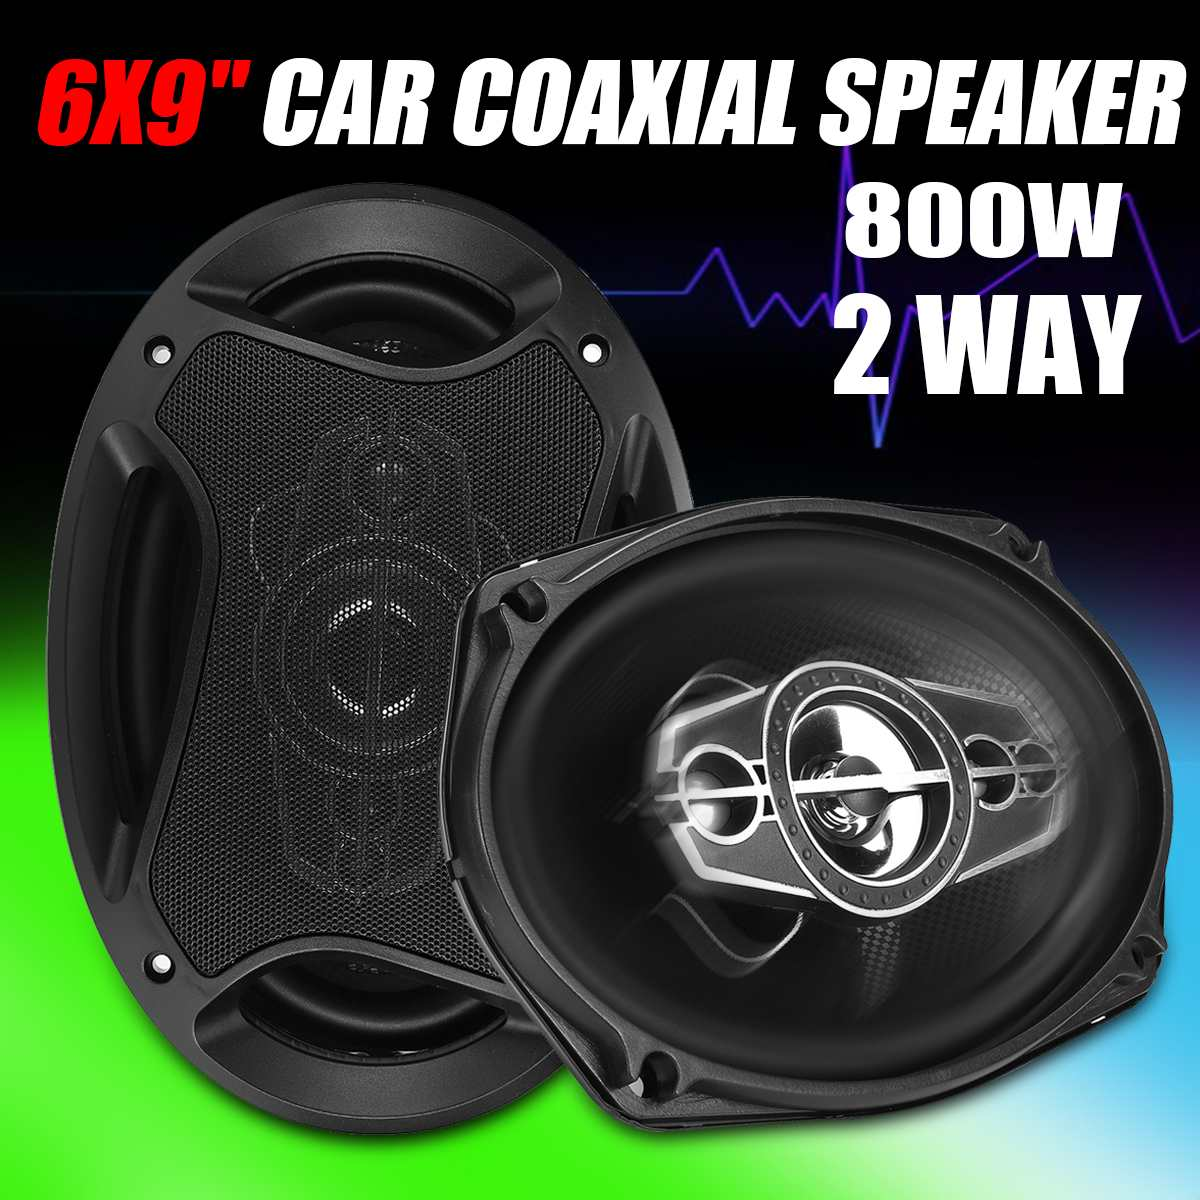 1Pair 6x9 Inch 800W Car Audio Speakers Car Coaxial Speaker Hifi Vehicle Auto Music Stereo Full Range Frequency Loudspeaker